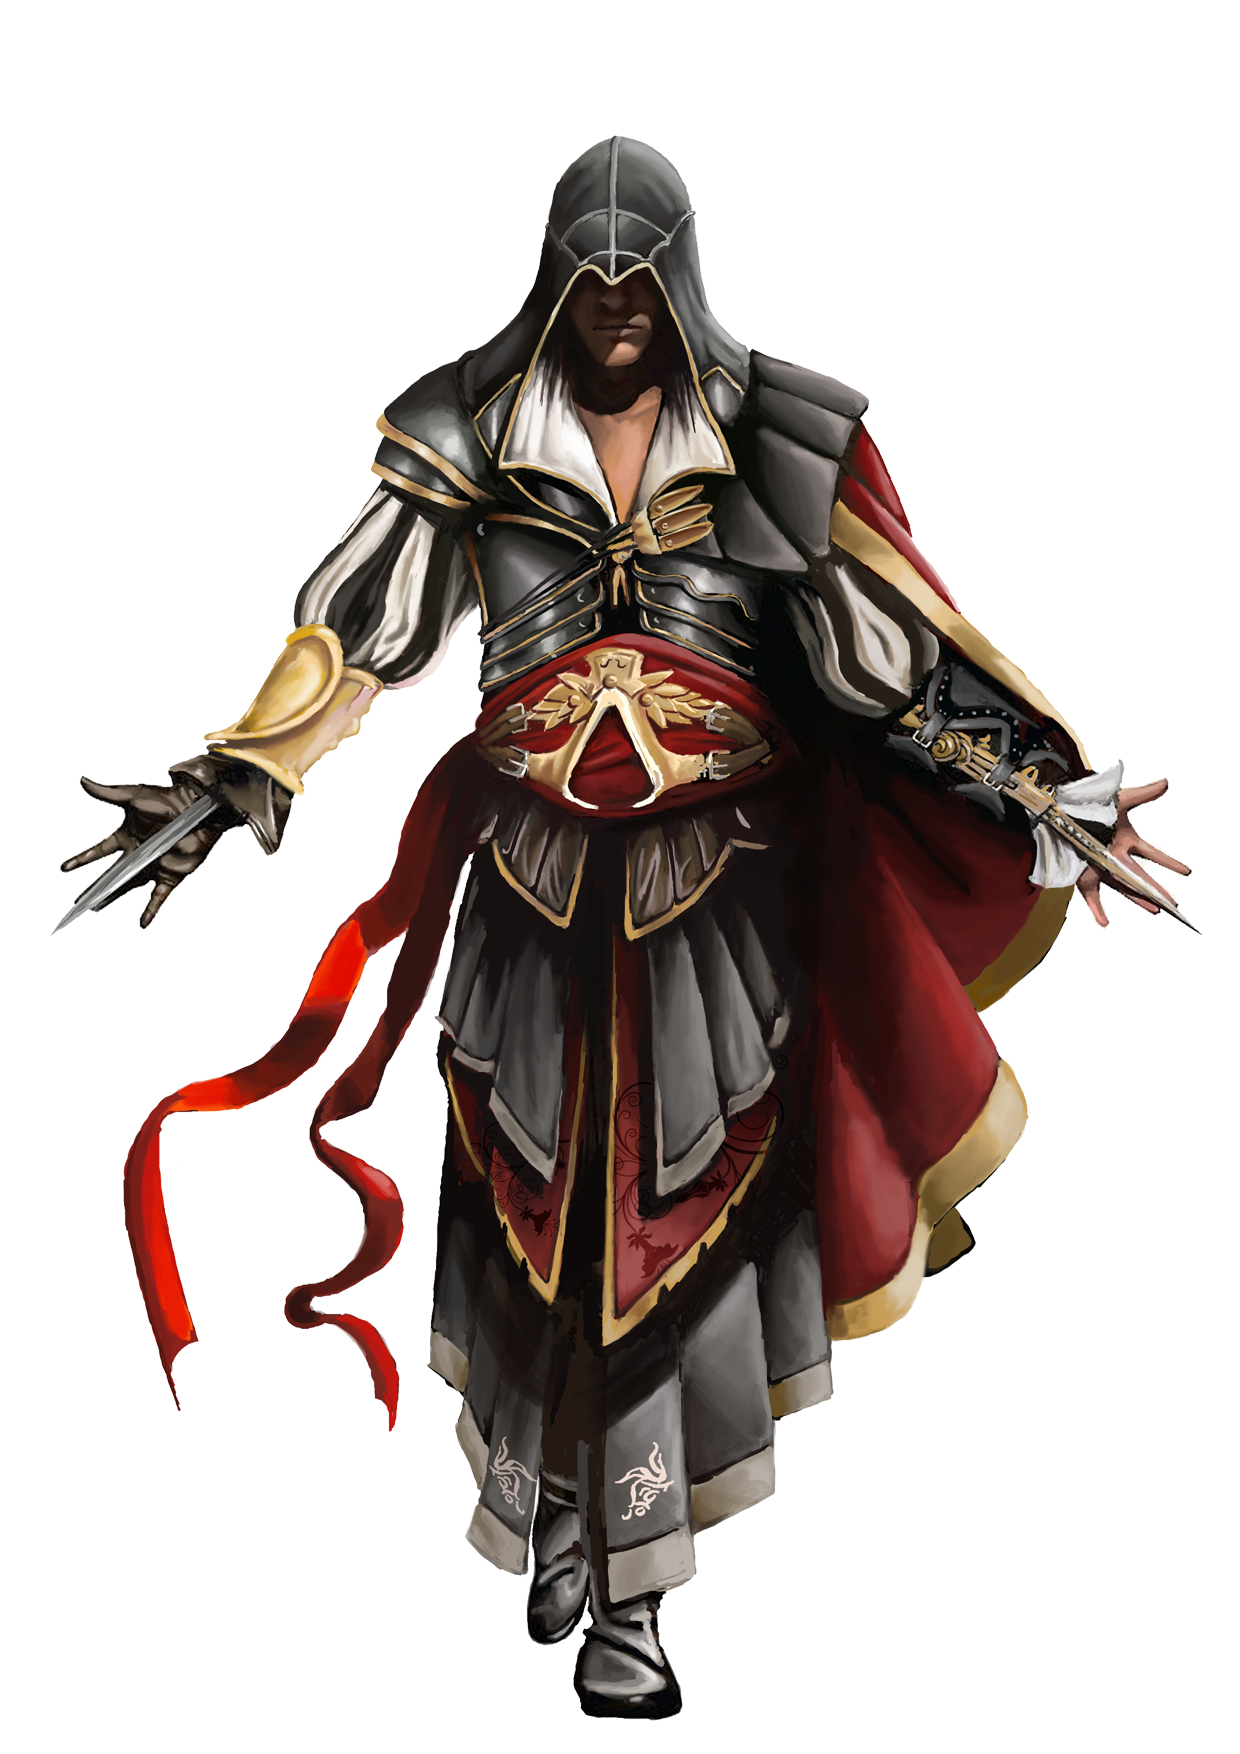 connor kenway - Google Search